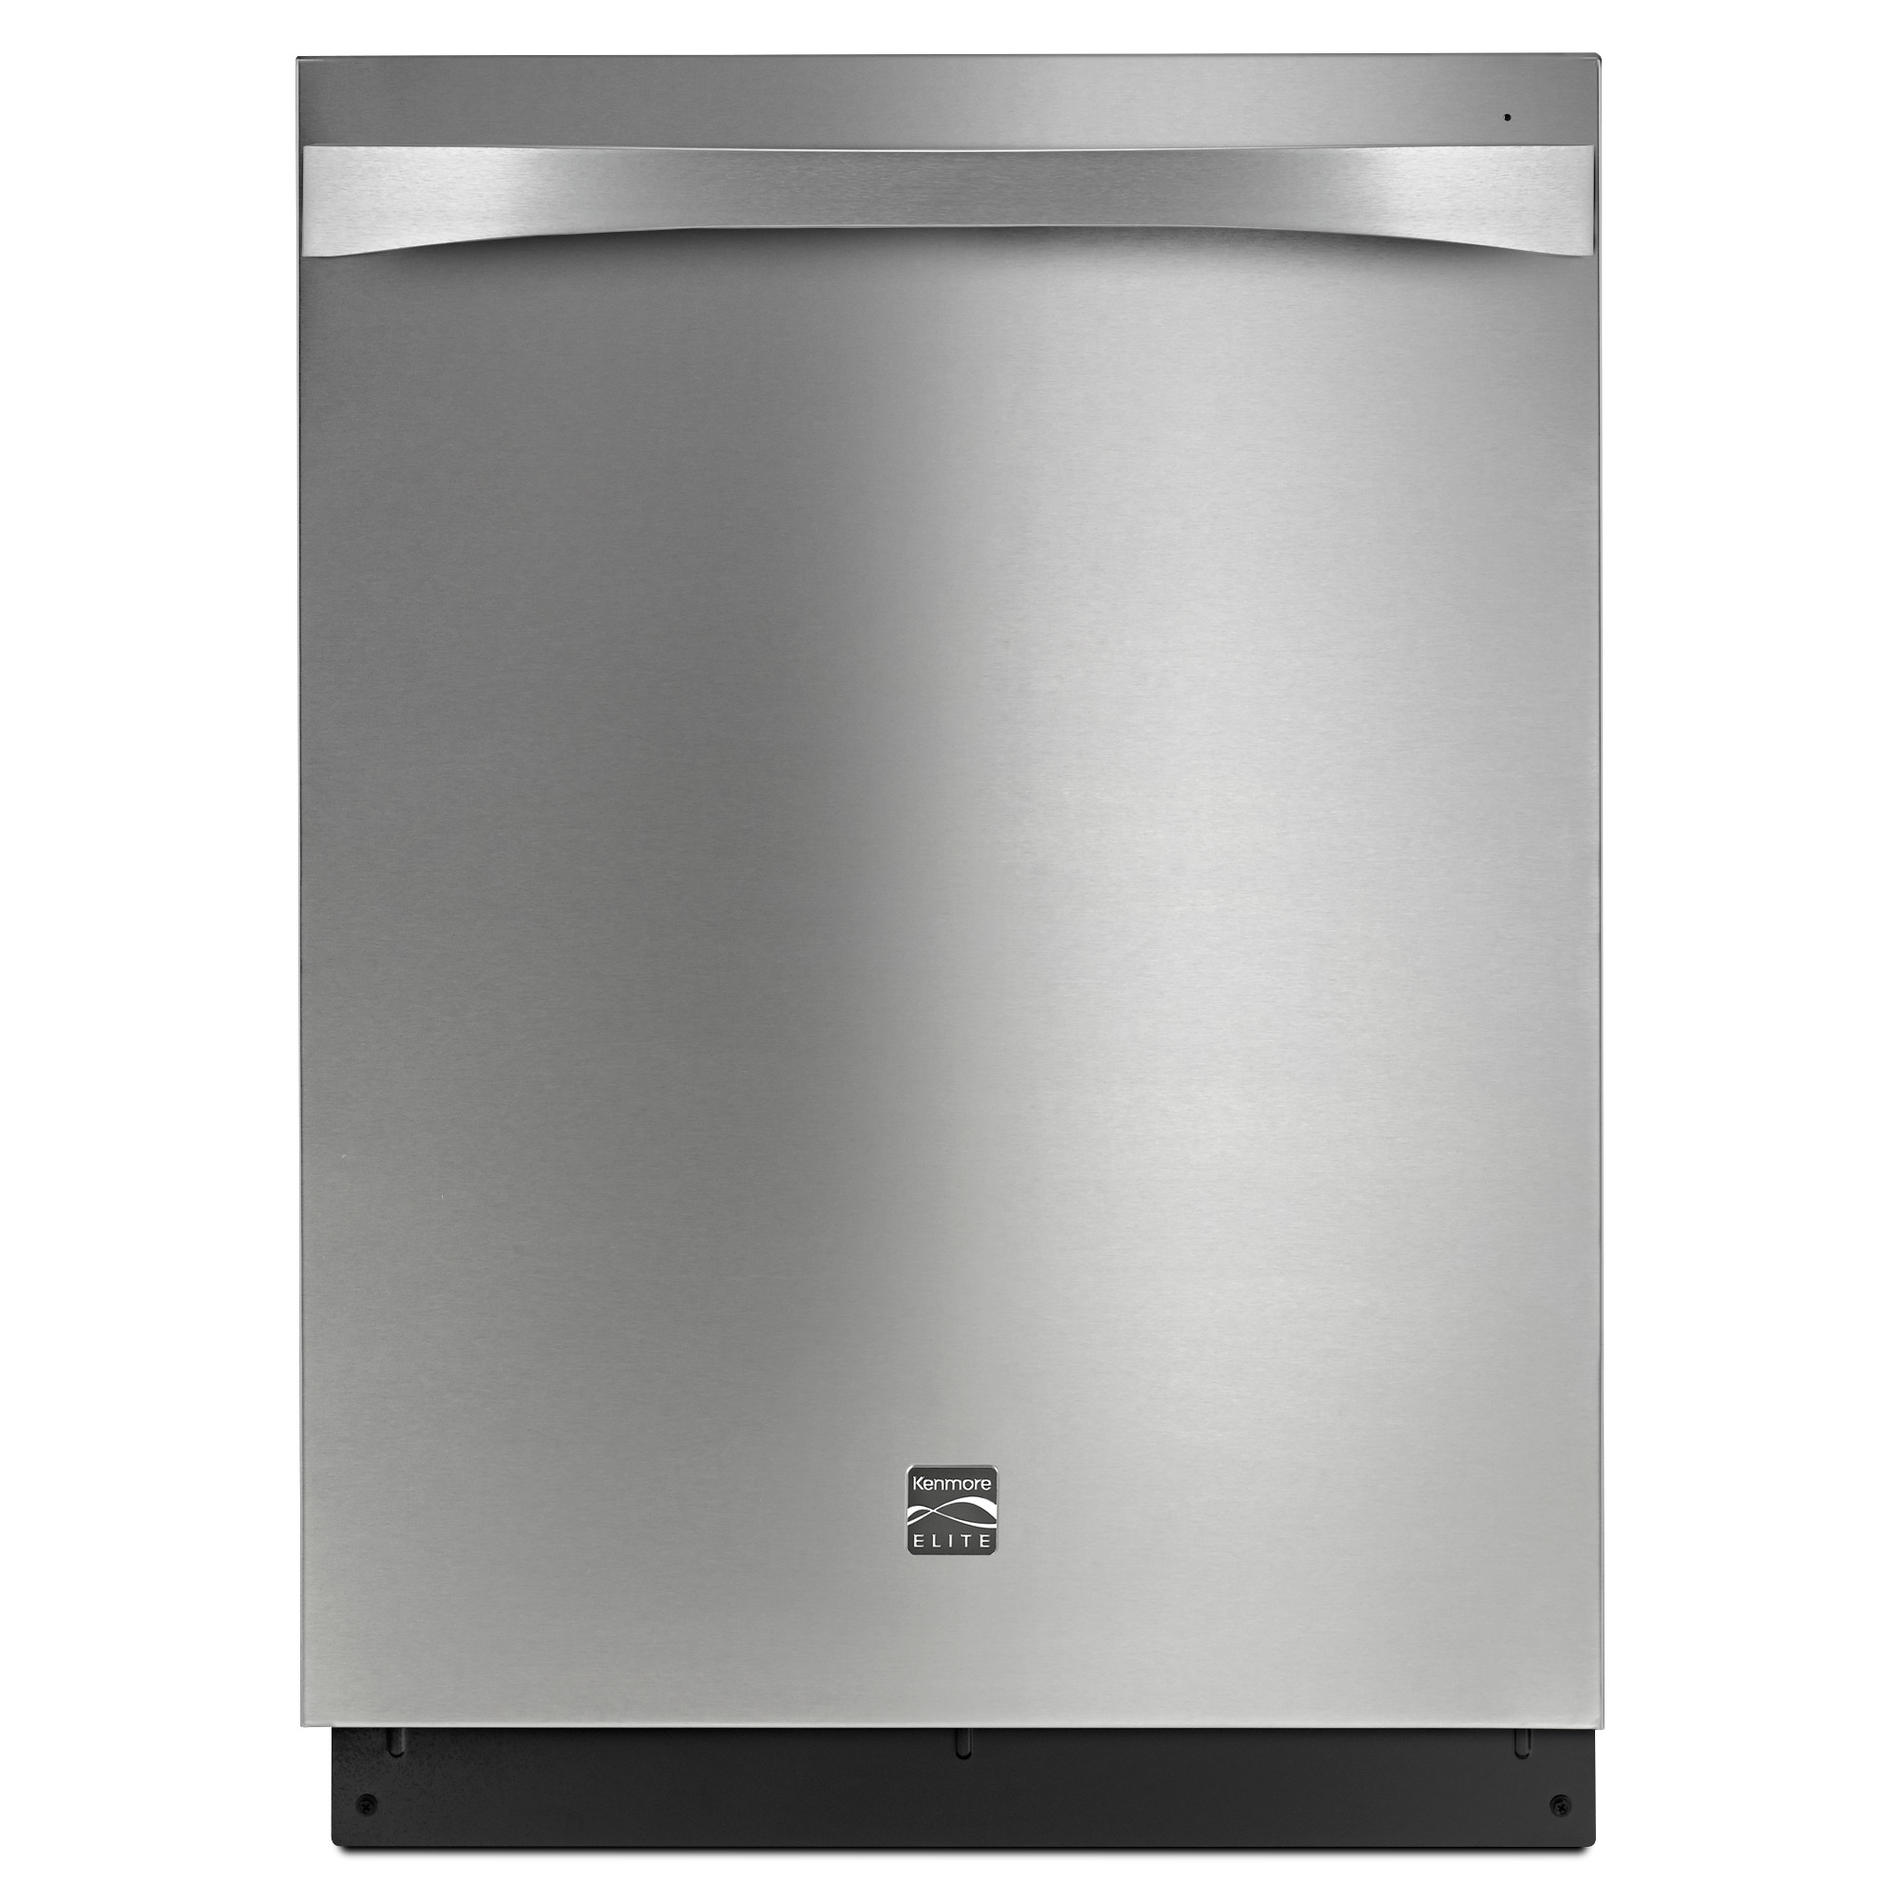 Kenmore Elite 14793 Dishwasher At 39 DBa With Turbo Zone Reach/360 Power  Wash Spray Arm   Stainless Steel Exterior With Stainless Steel Tub   Shop  Your Way: ...